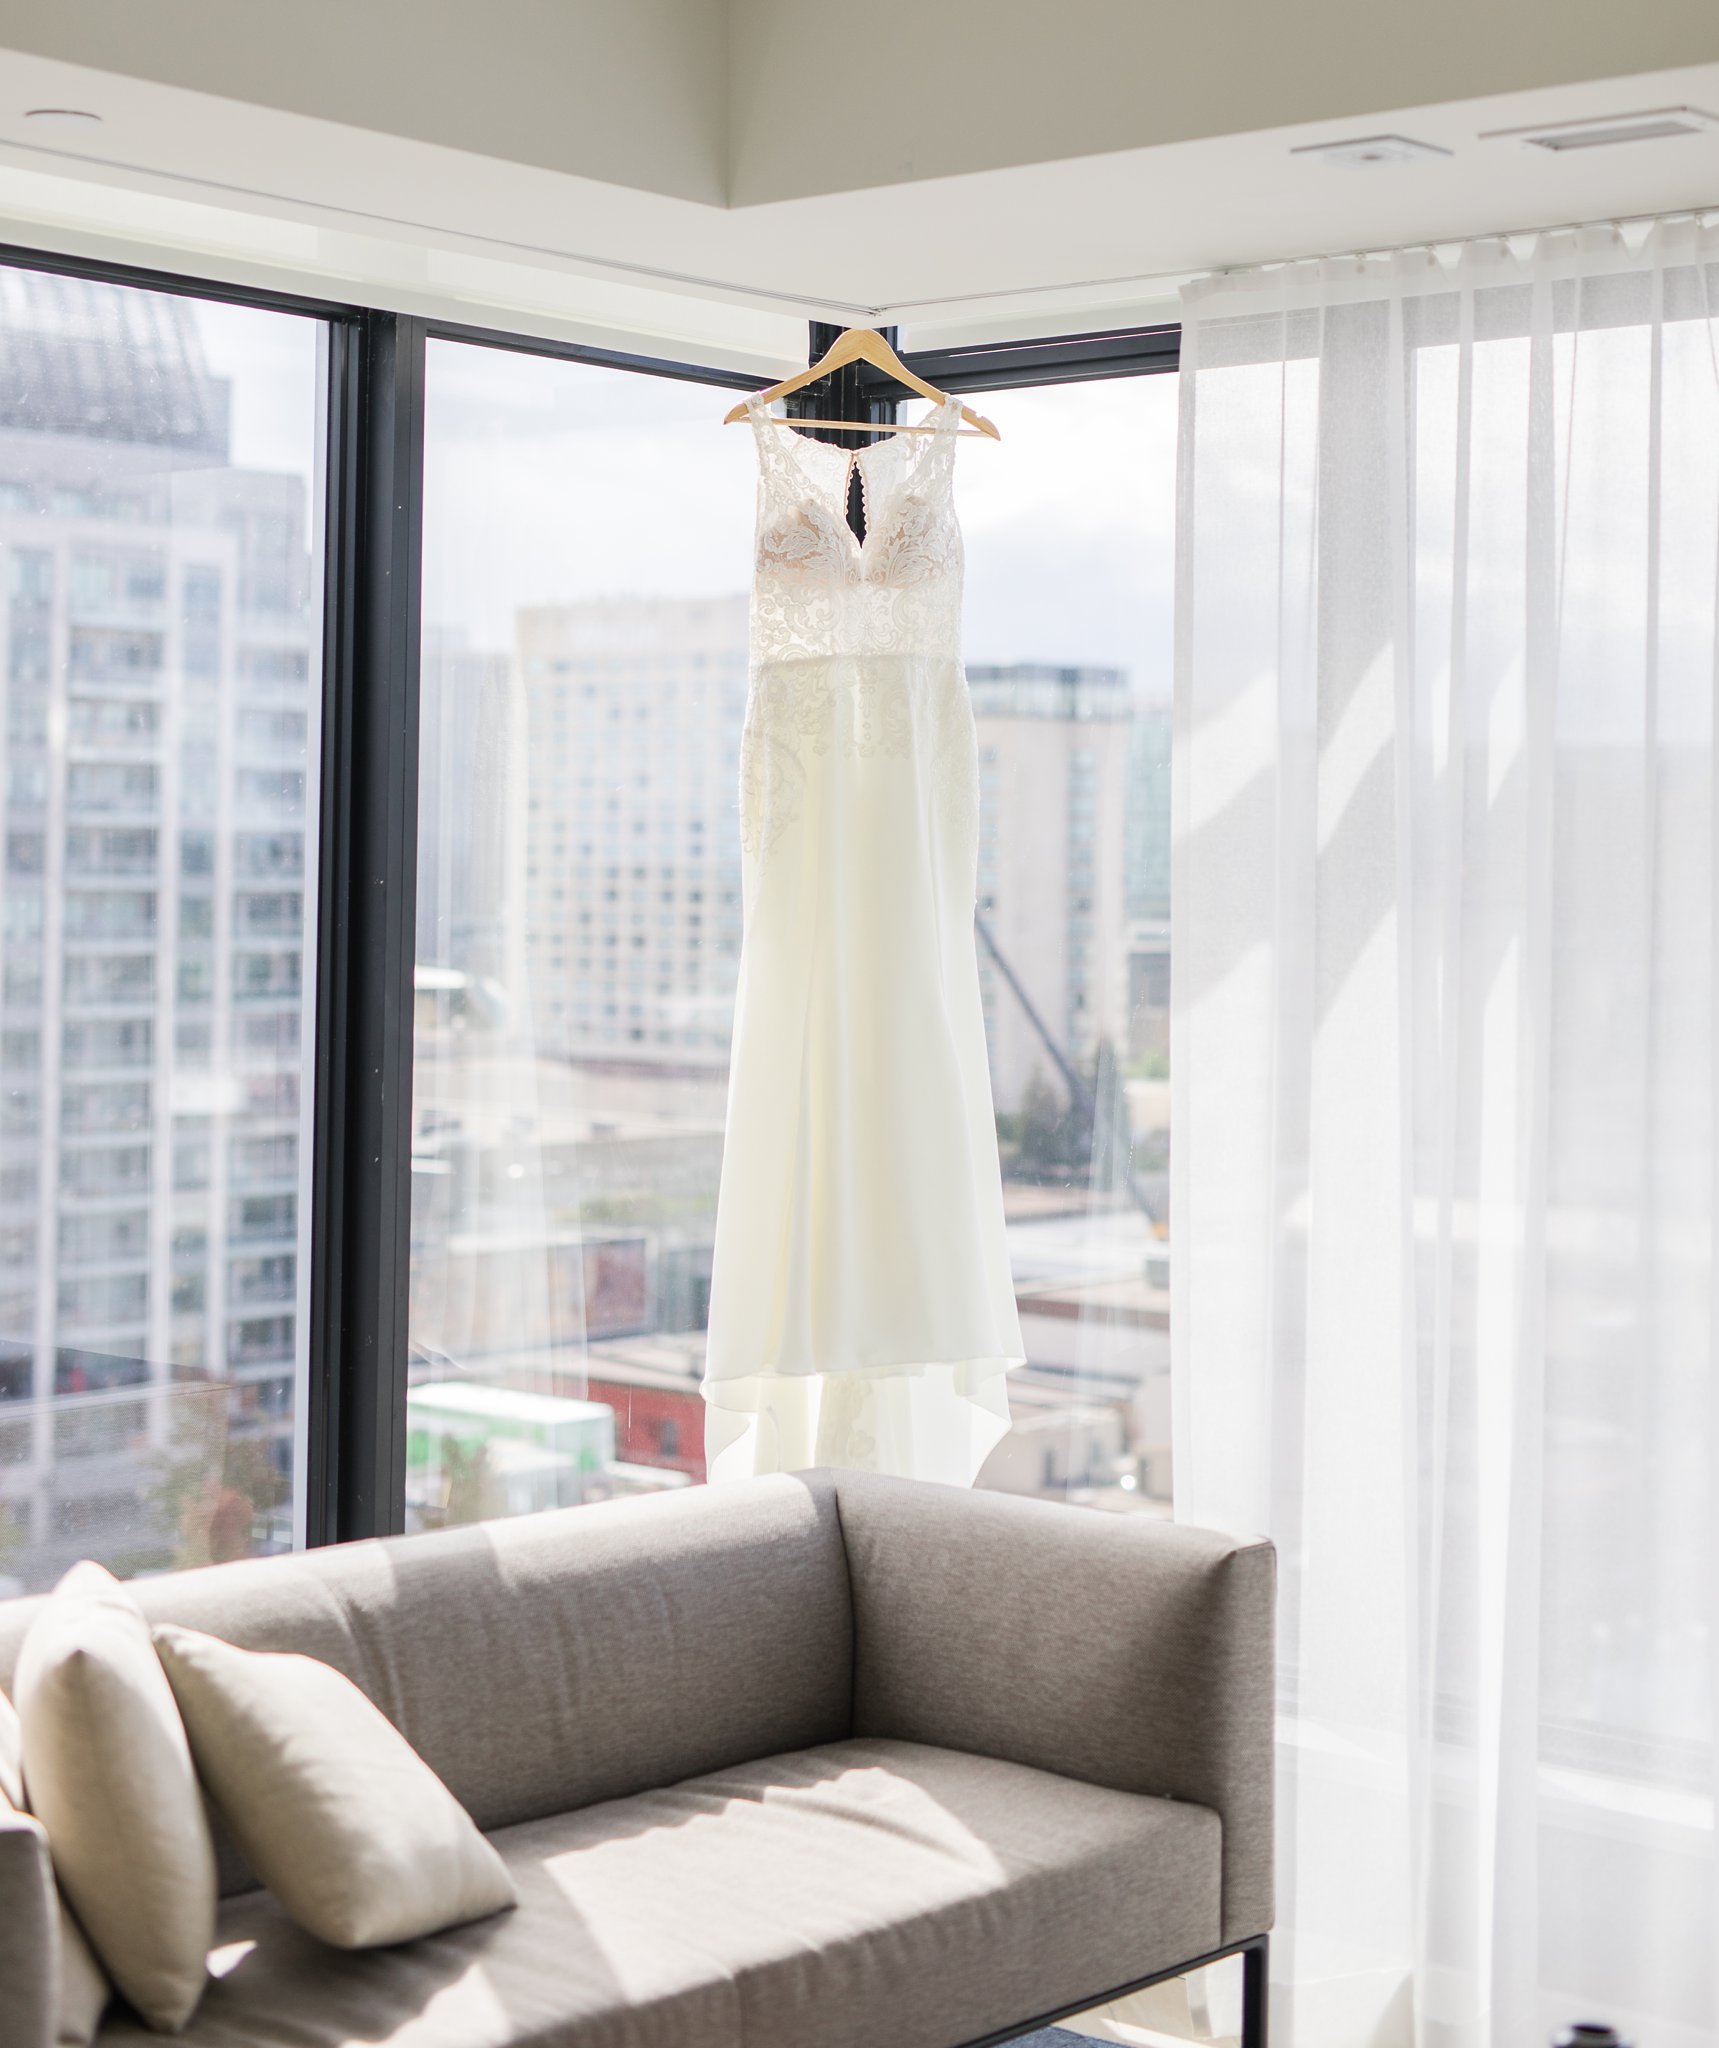 Essence of Australia sheer midriff dress Ottawa restaurant wedding at Sidedoor Restaurant